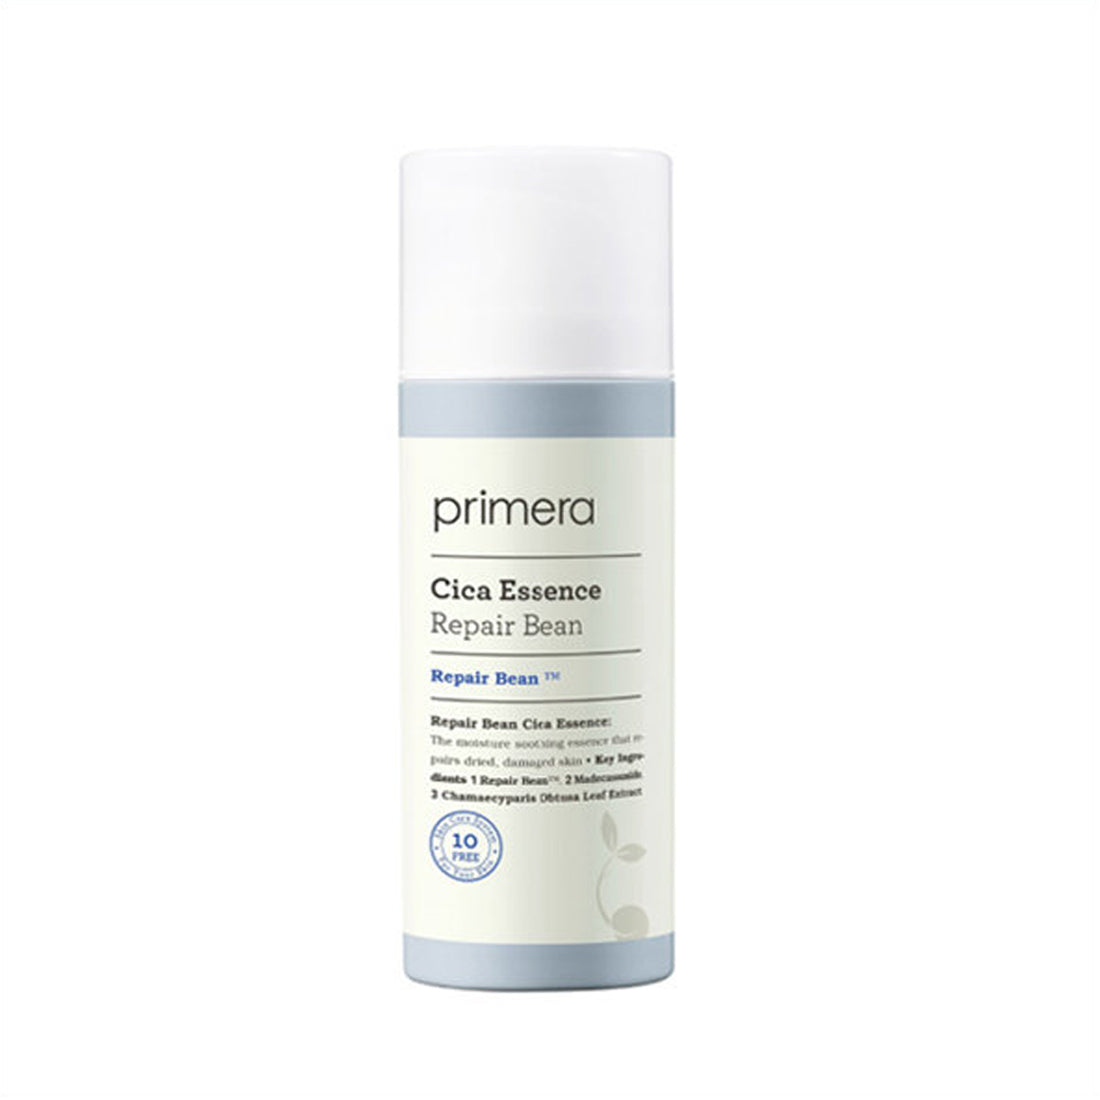 Primera Repair Bean Cica Essence 50ml